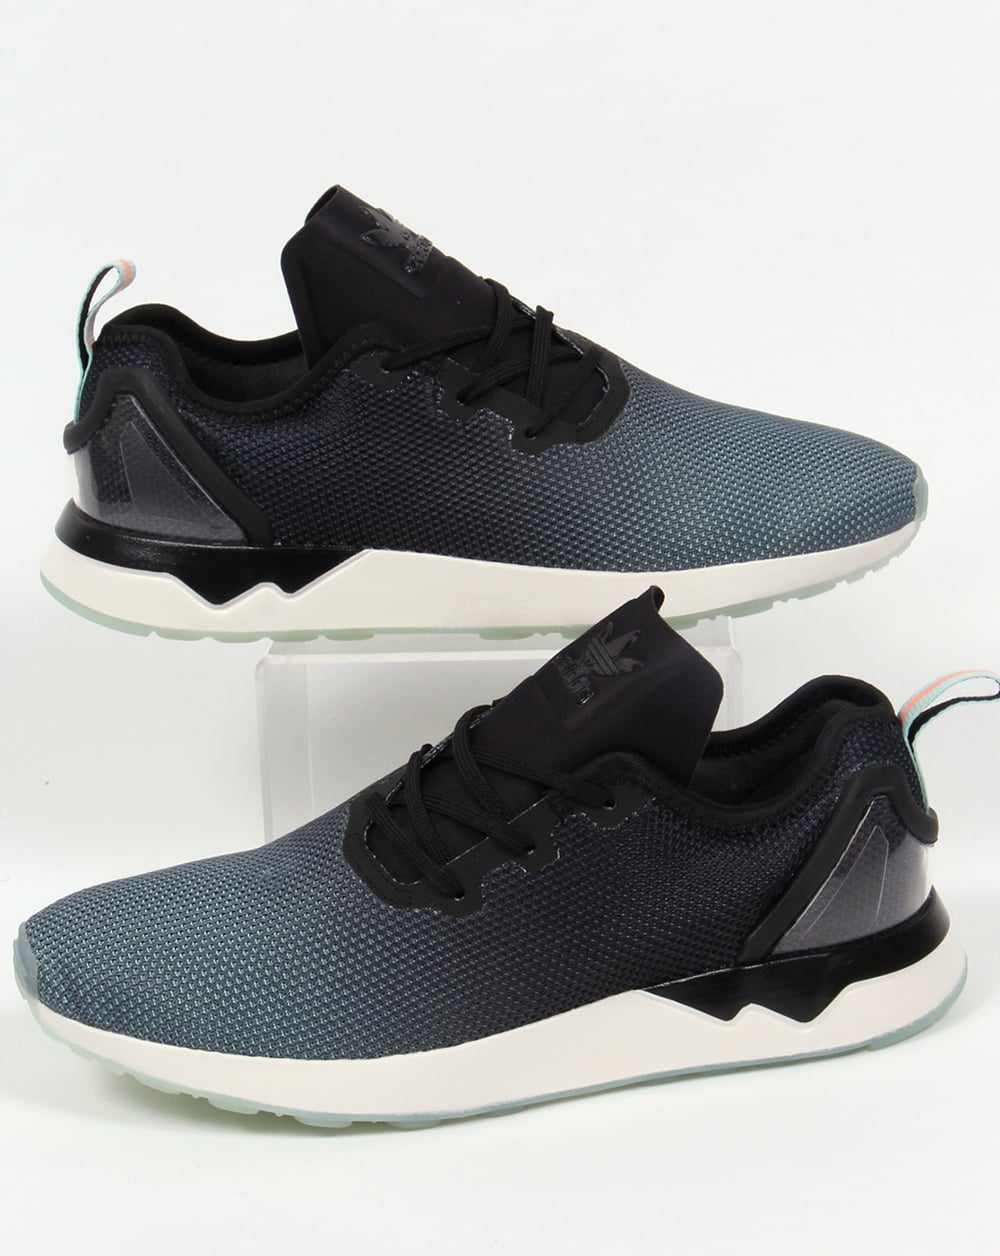 buy popular ddd45 65652 Adidas ZX Flux Racer Asym Trainers Black/Black/Blue Glow